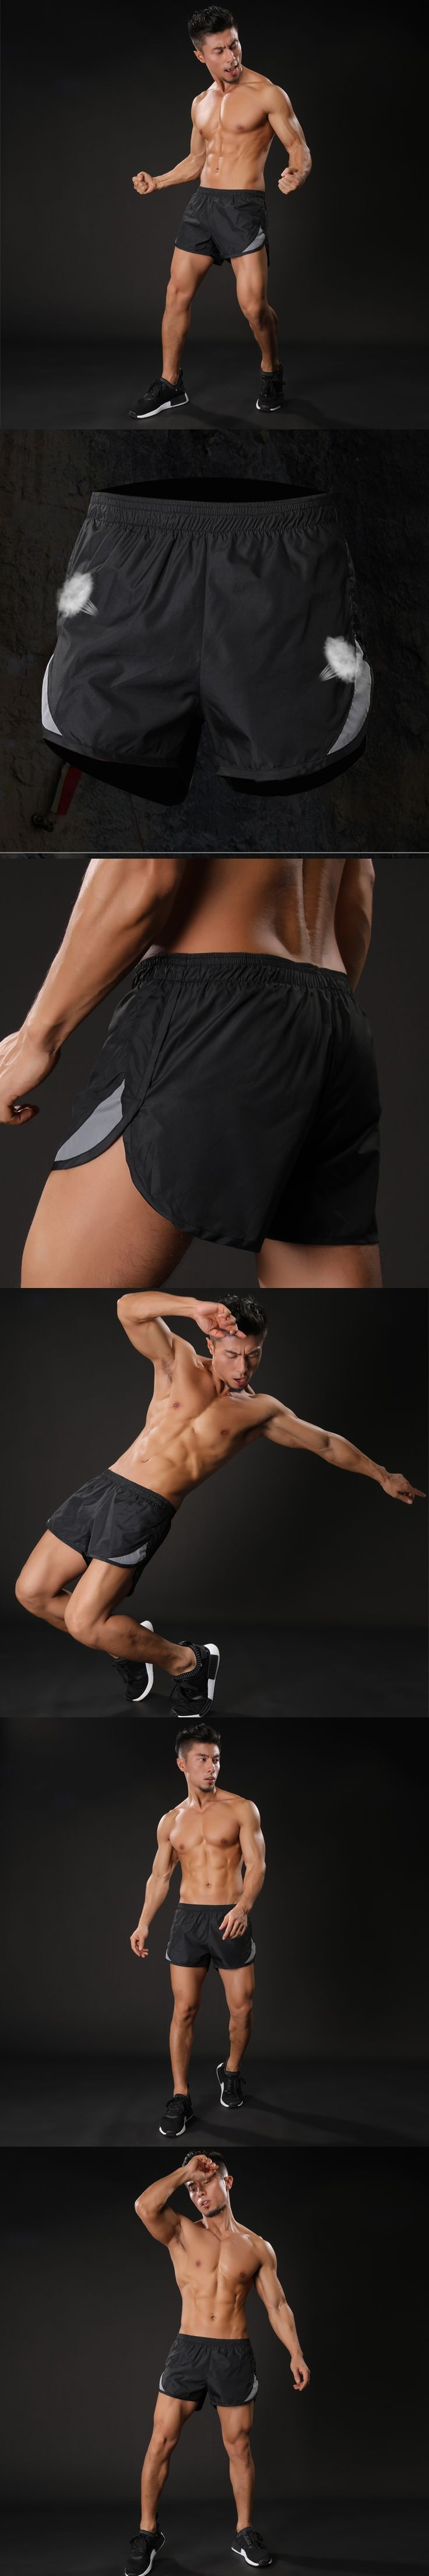 Short Patchwork Shorts Men Loose Outwear Plus Size New Men Sporting Shorts Summer Quick Drying Short Pants Casual Clothing 3XL